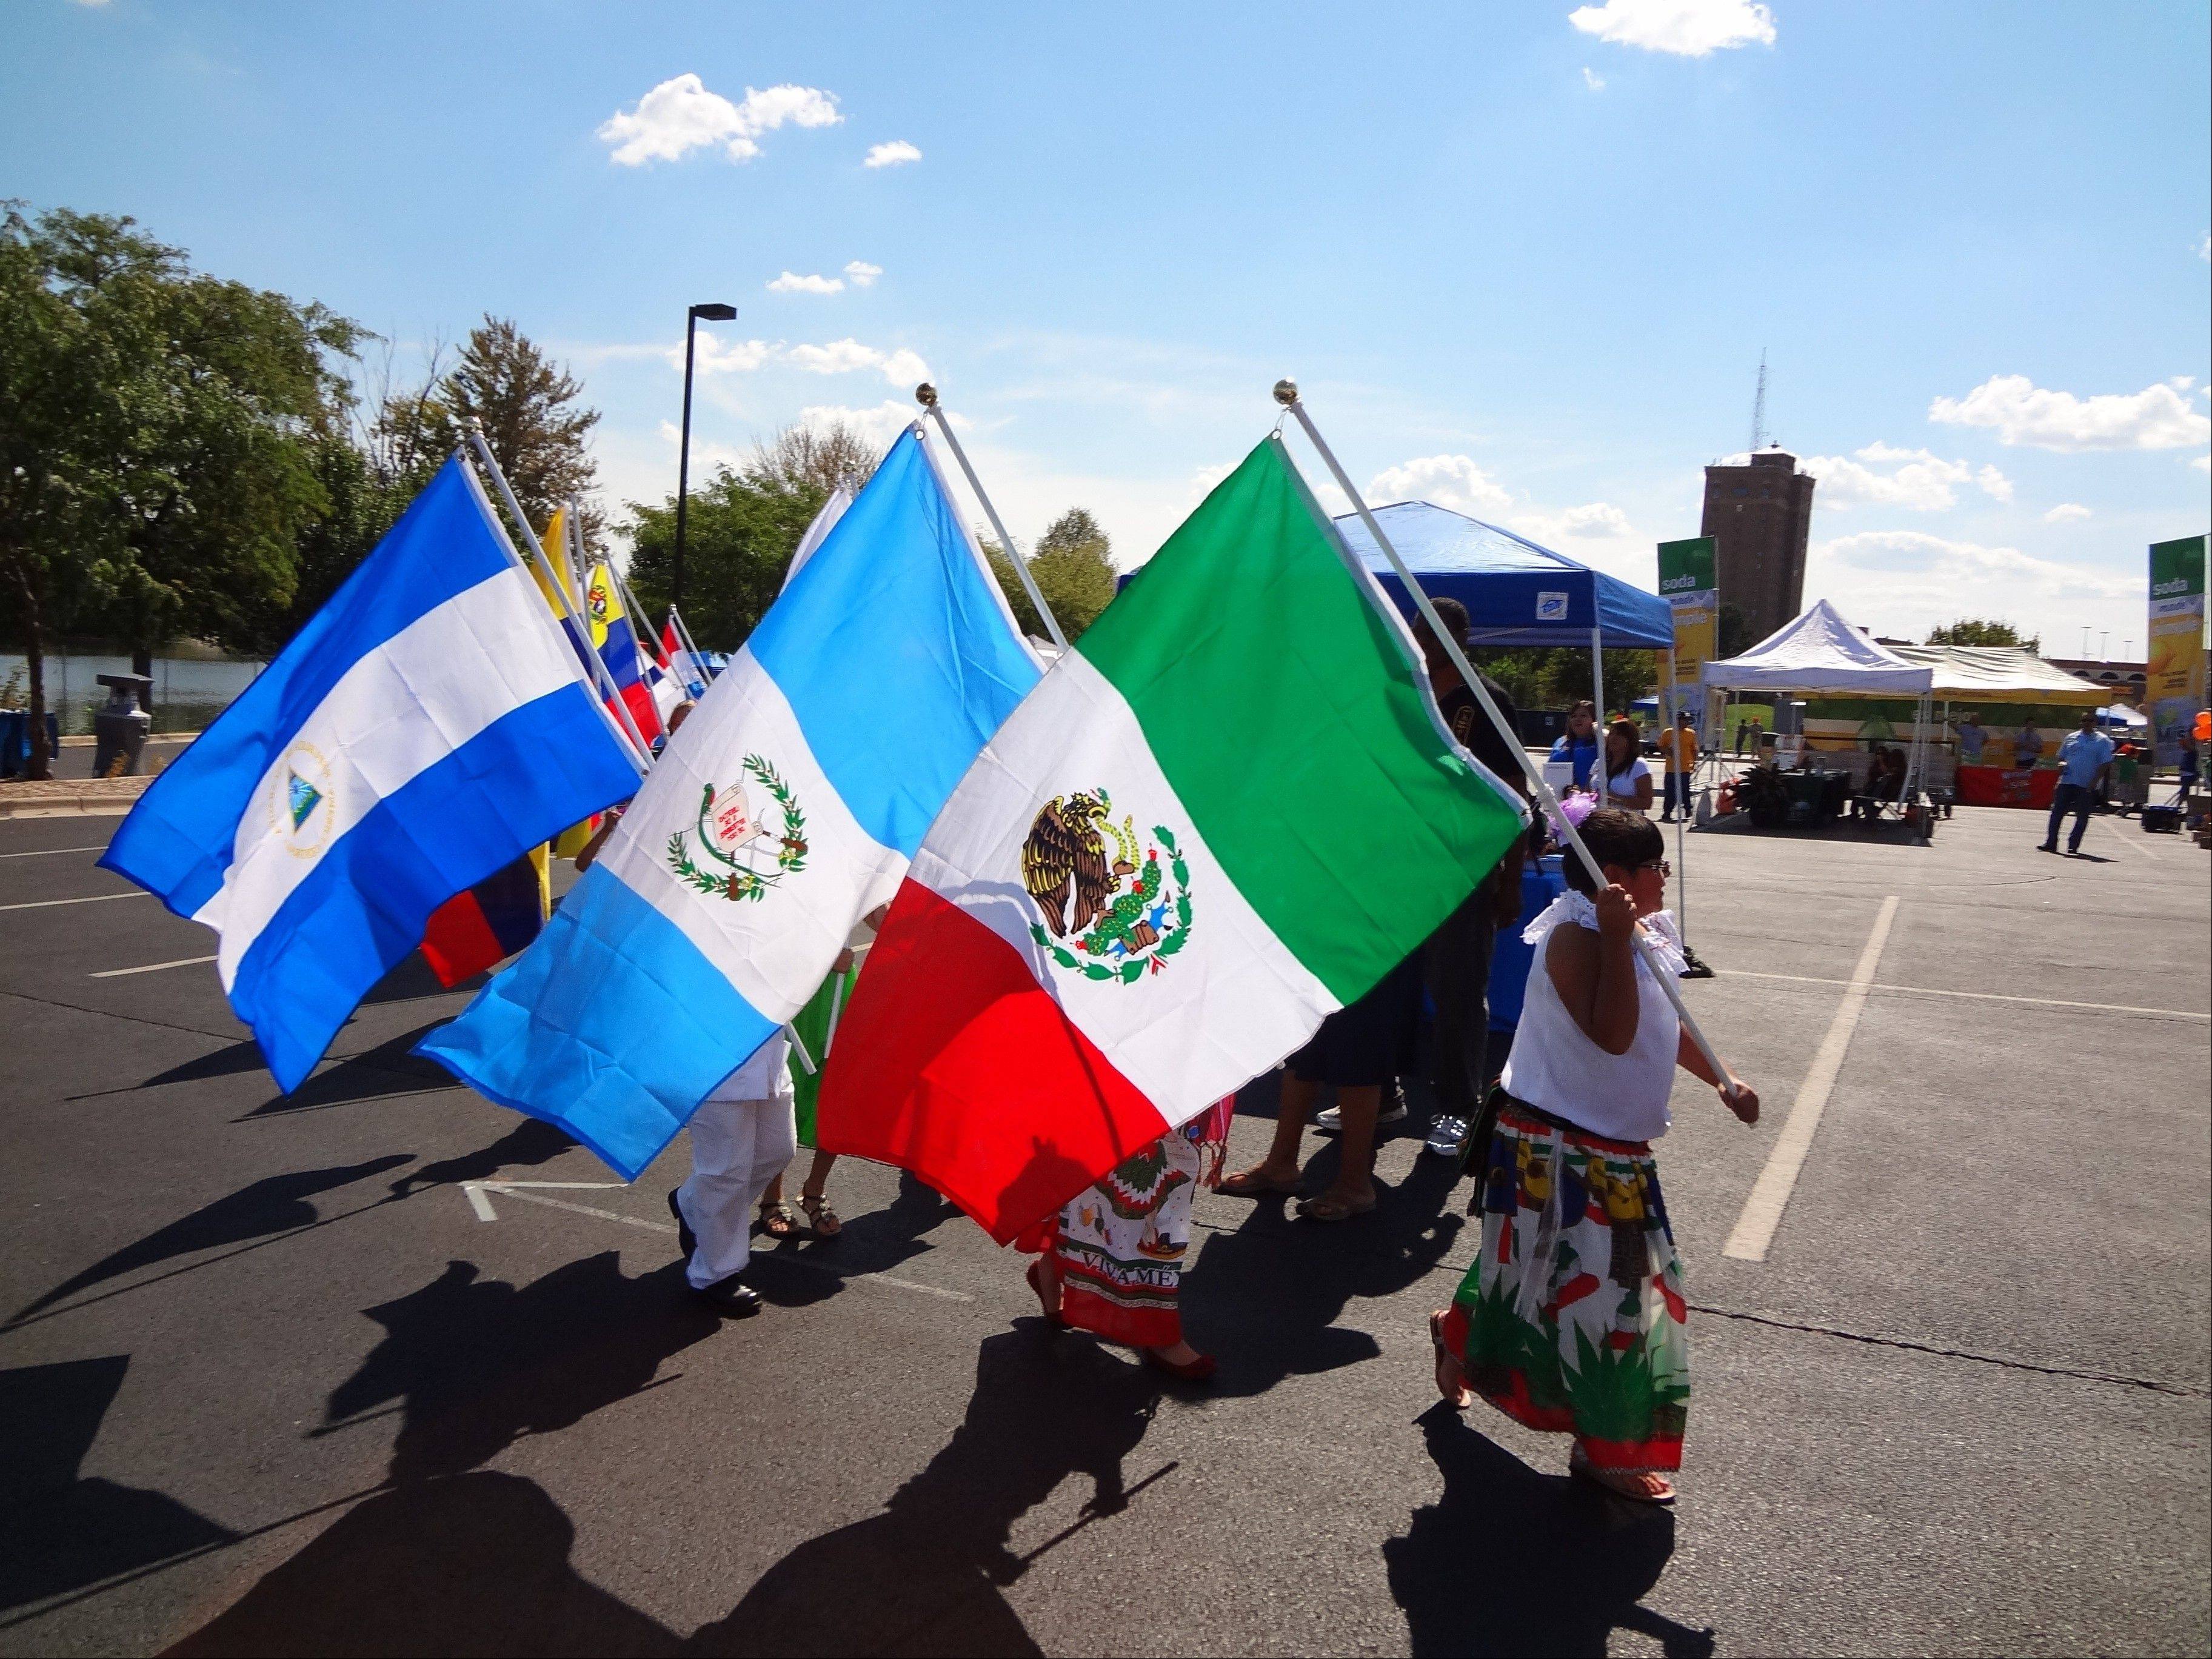 Organizers of Fiestas Patrias, a celebration of Mexican independence hosted by the Aurora Hispanic Chamber of Commerce, say they are 90 percent sure this year's event can be held at the new RiverEdge Park along the Fox River.